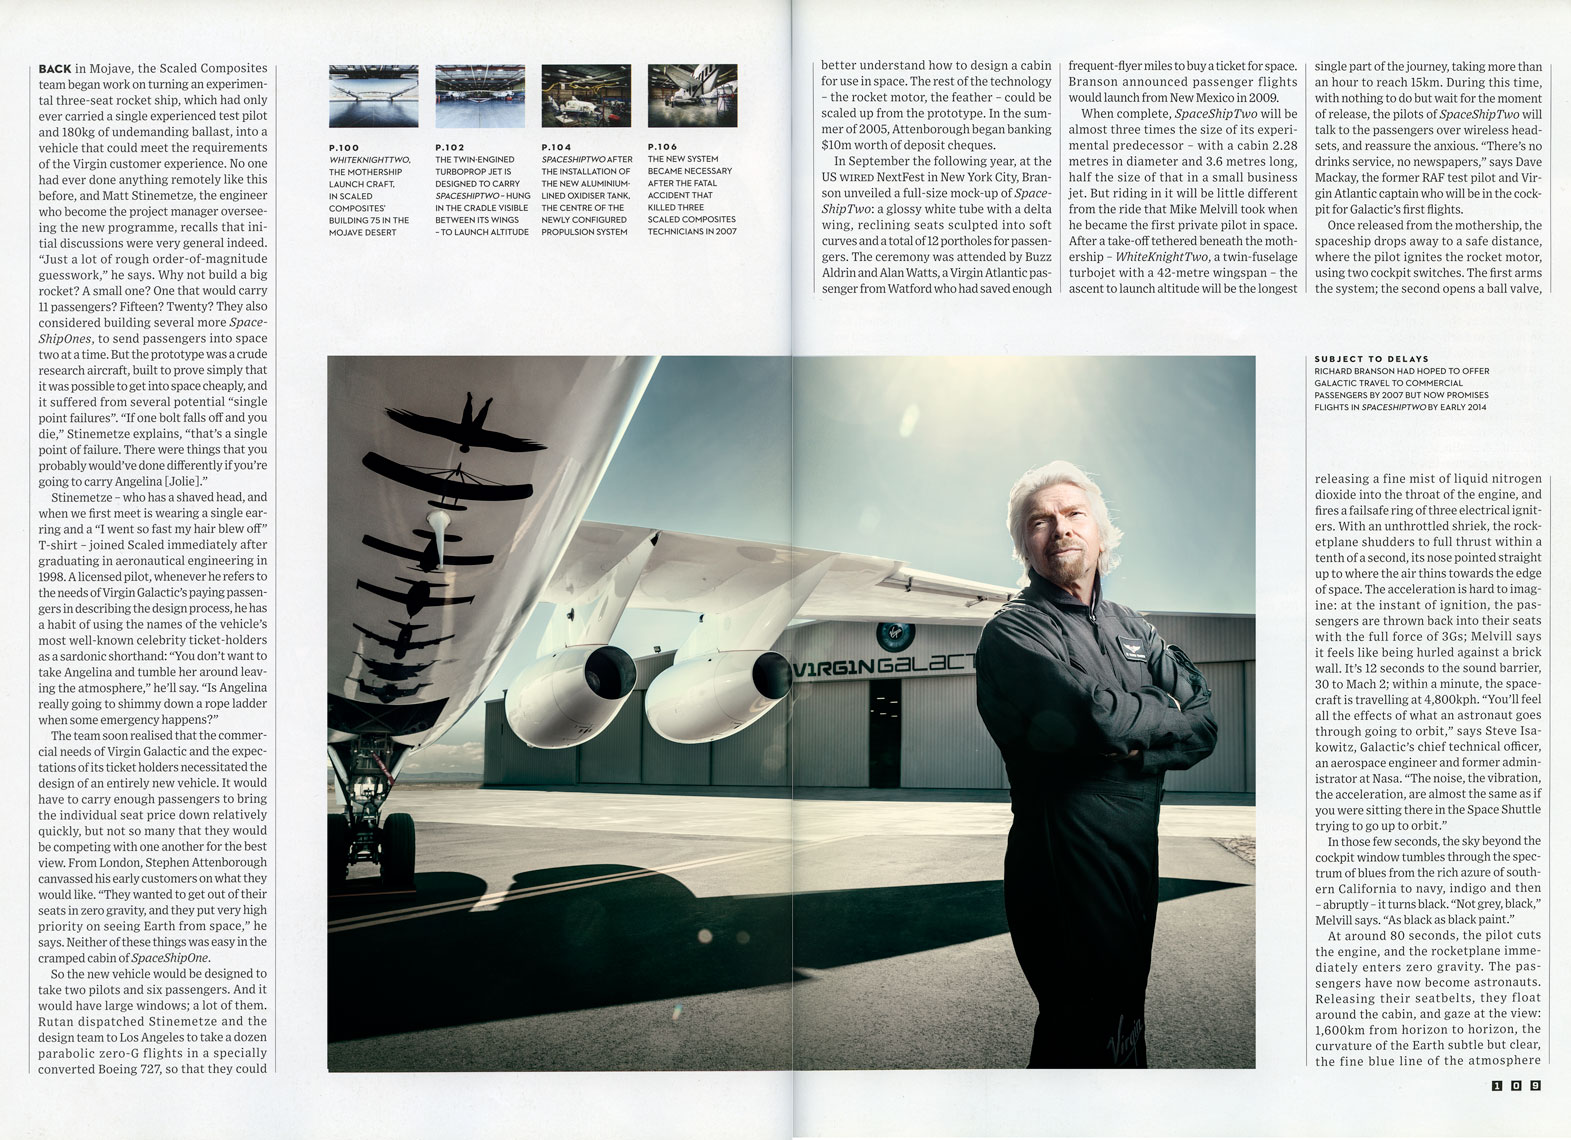 WIRED UK: BRANSON GOES GALACTIC: Richard Branson. March 2013 issue - SPREAD 9